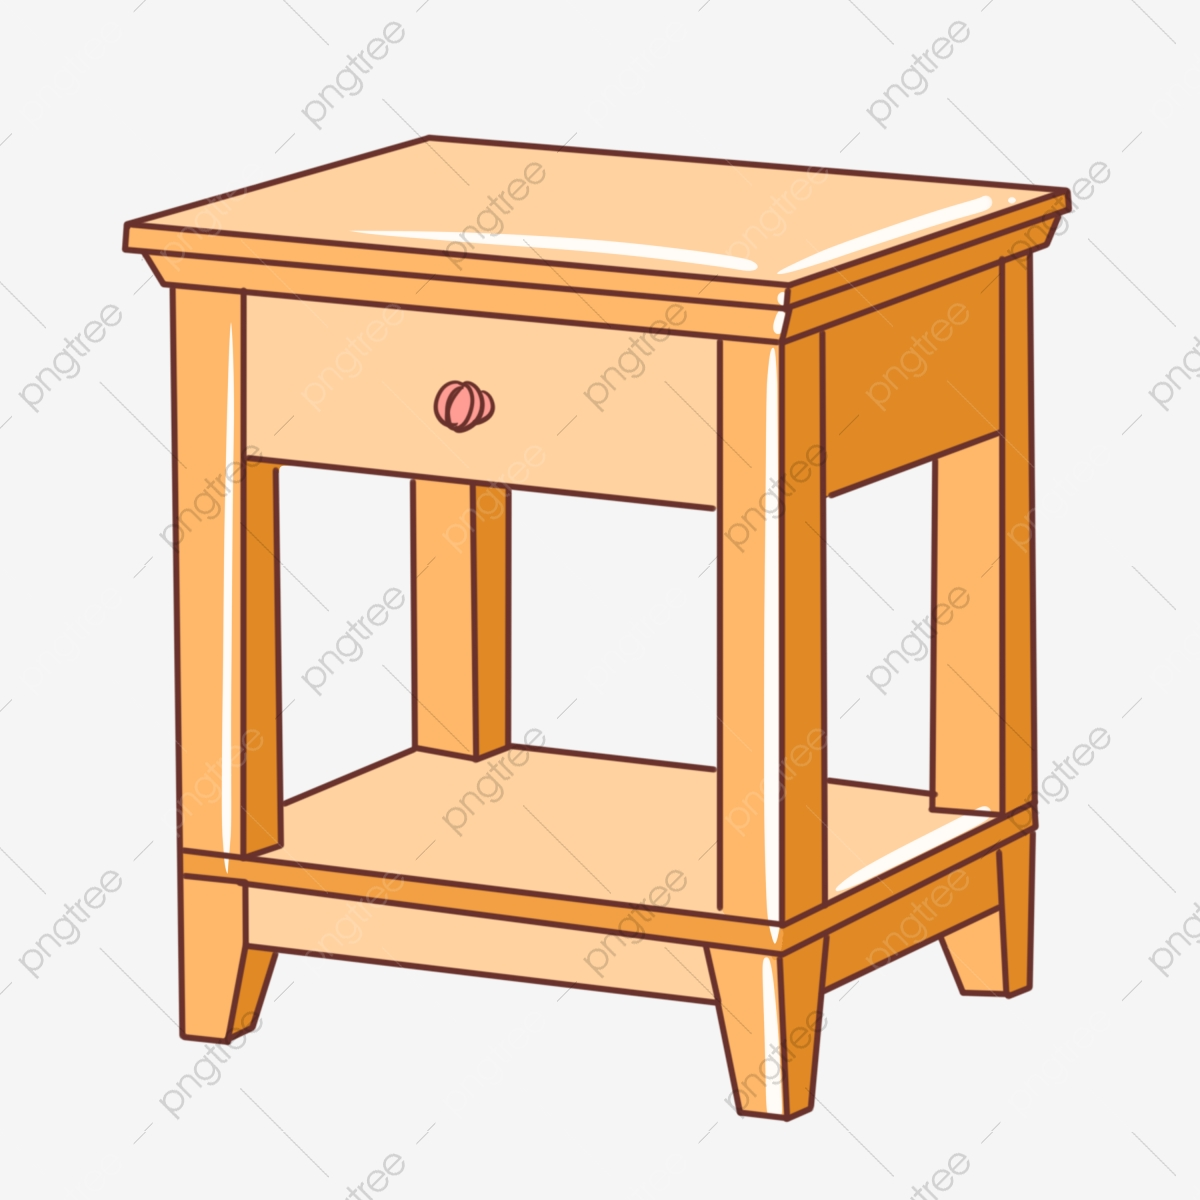 Picture of: Solid Wood Bedside Cabinet Illustration Solid Wood Bedside Cabinet Illustration Png Transparent Clipart Image And Psd File For Free Download